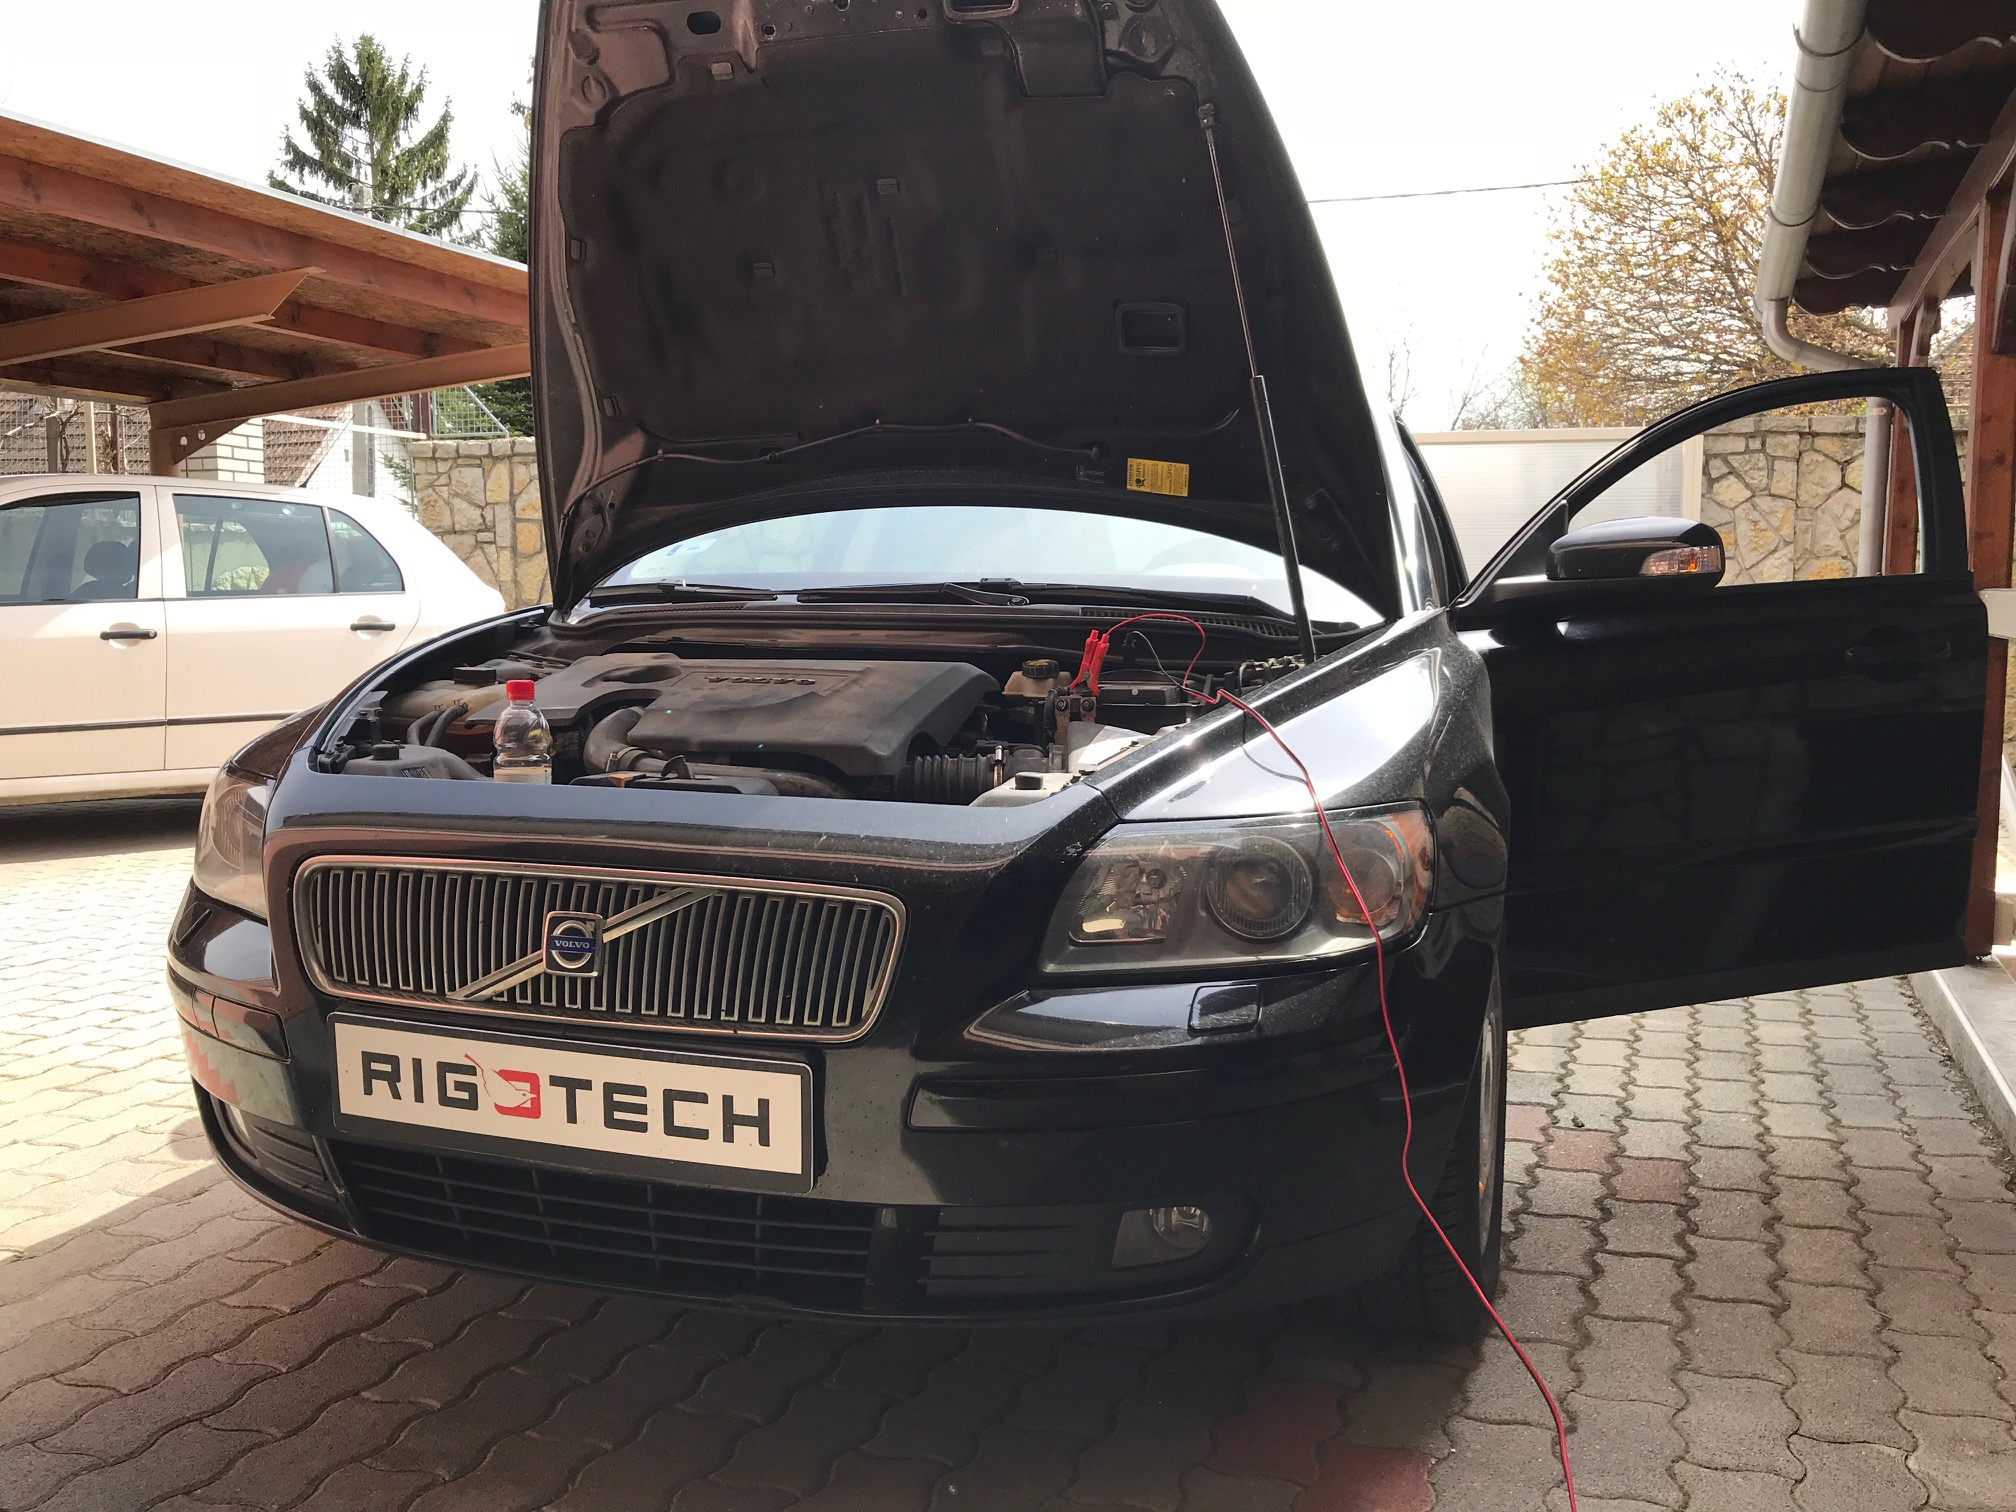 Volvo-V50-16hdi-110Le-Chiptuning